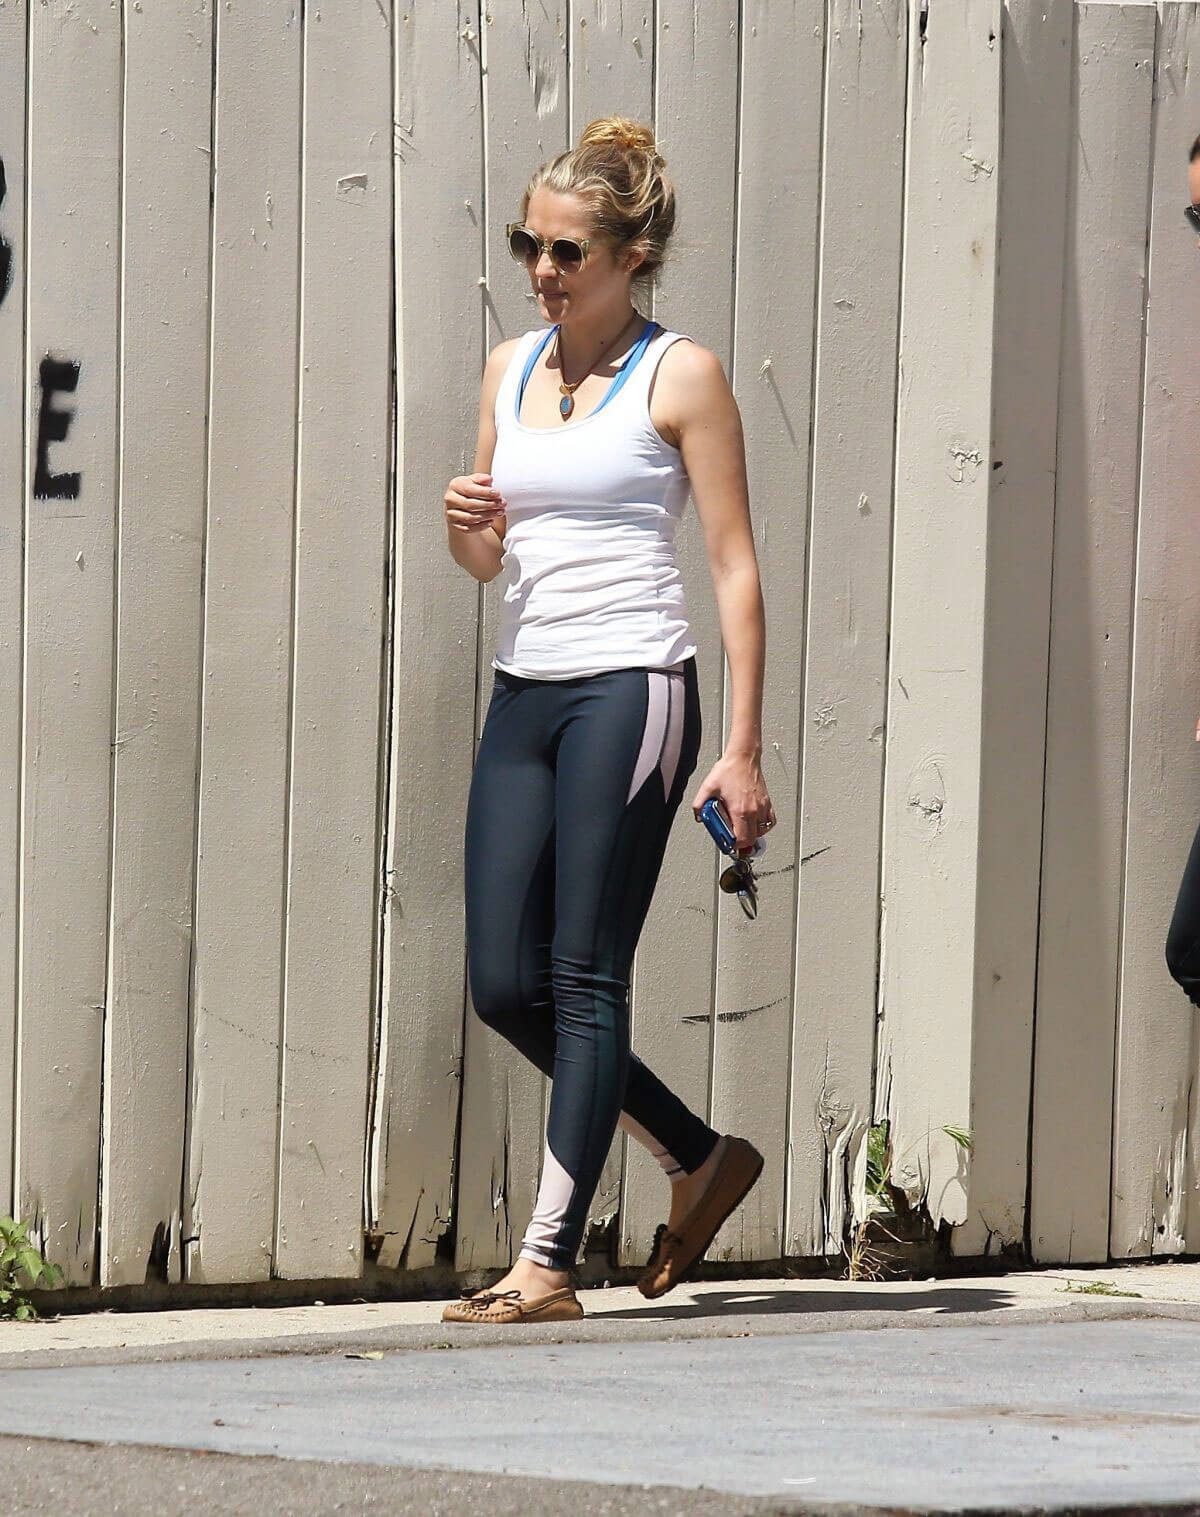 Teresa Palmer wearing in Tights Top & blue Jeans in Los Angeles